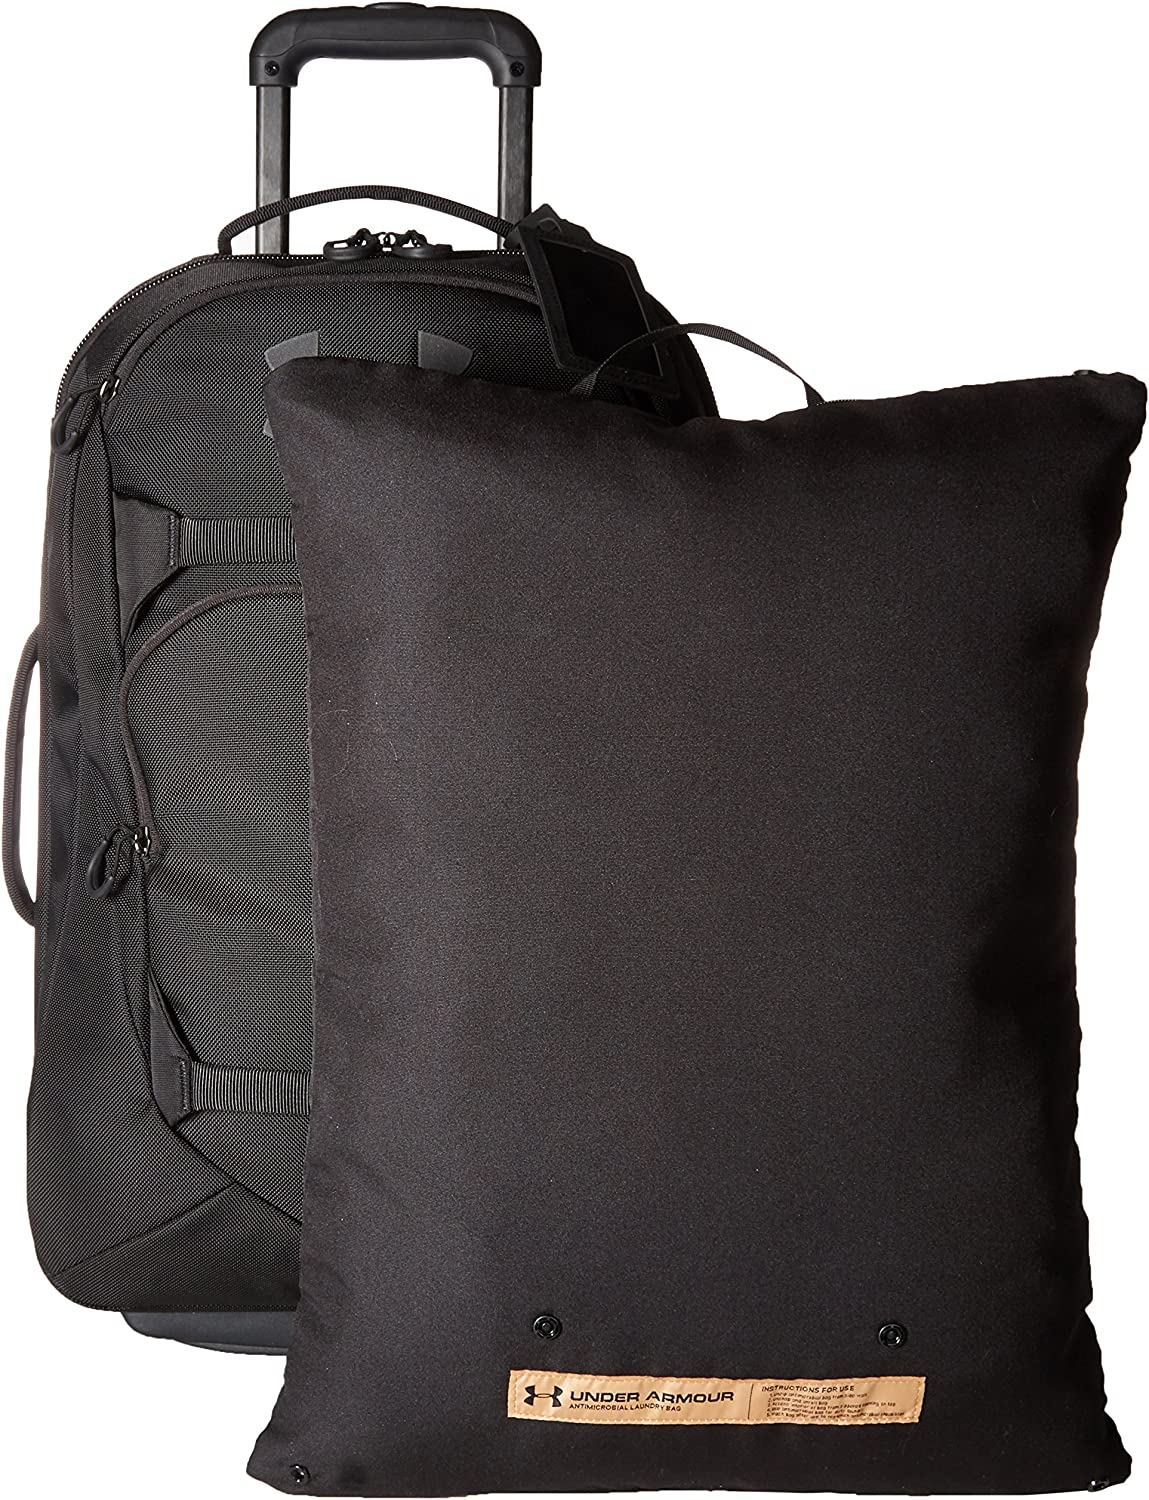 Under Armour Carry-On Rolling Suitcase